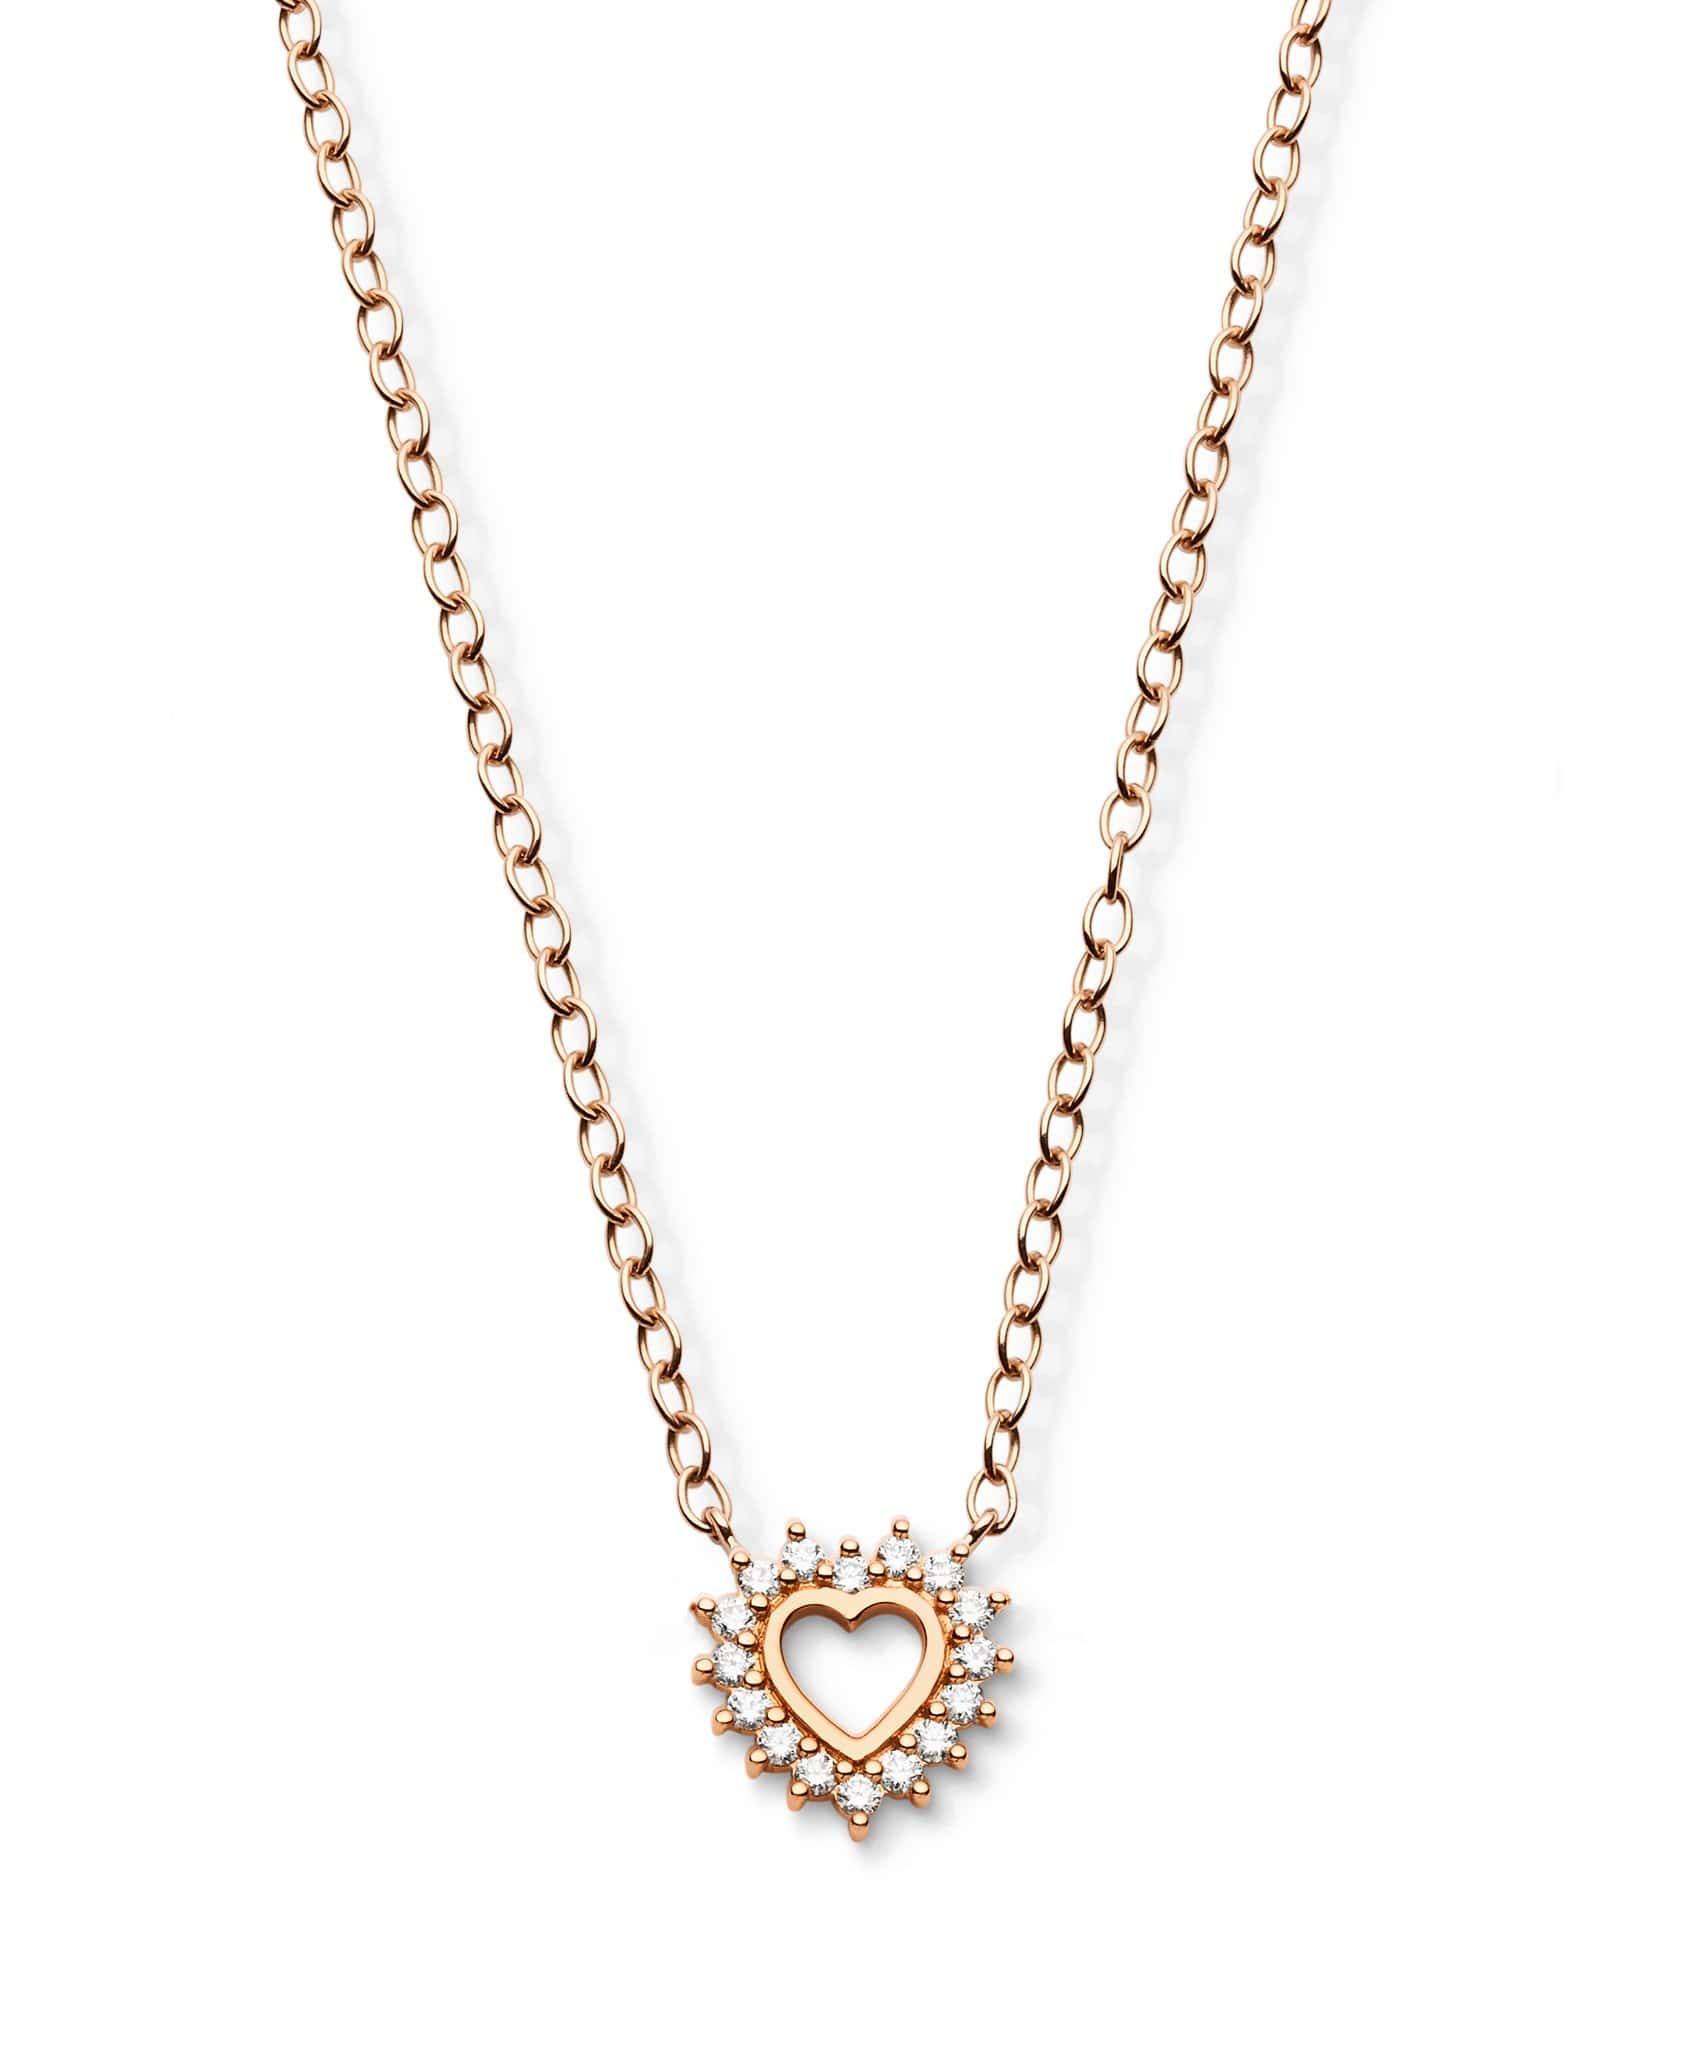 Medium Love Pendant: Discover Luxury Fine Jewelry | Nouvel Heritage || Rose Gold